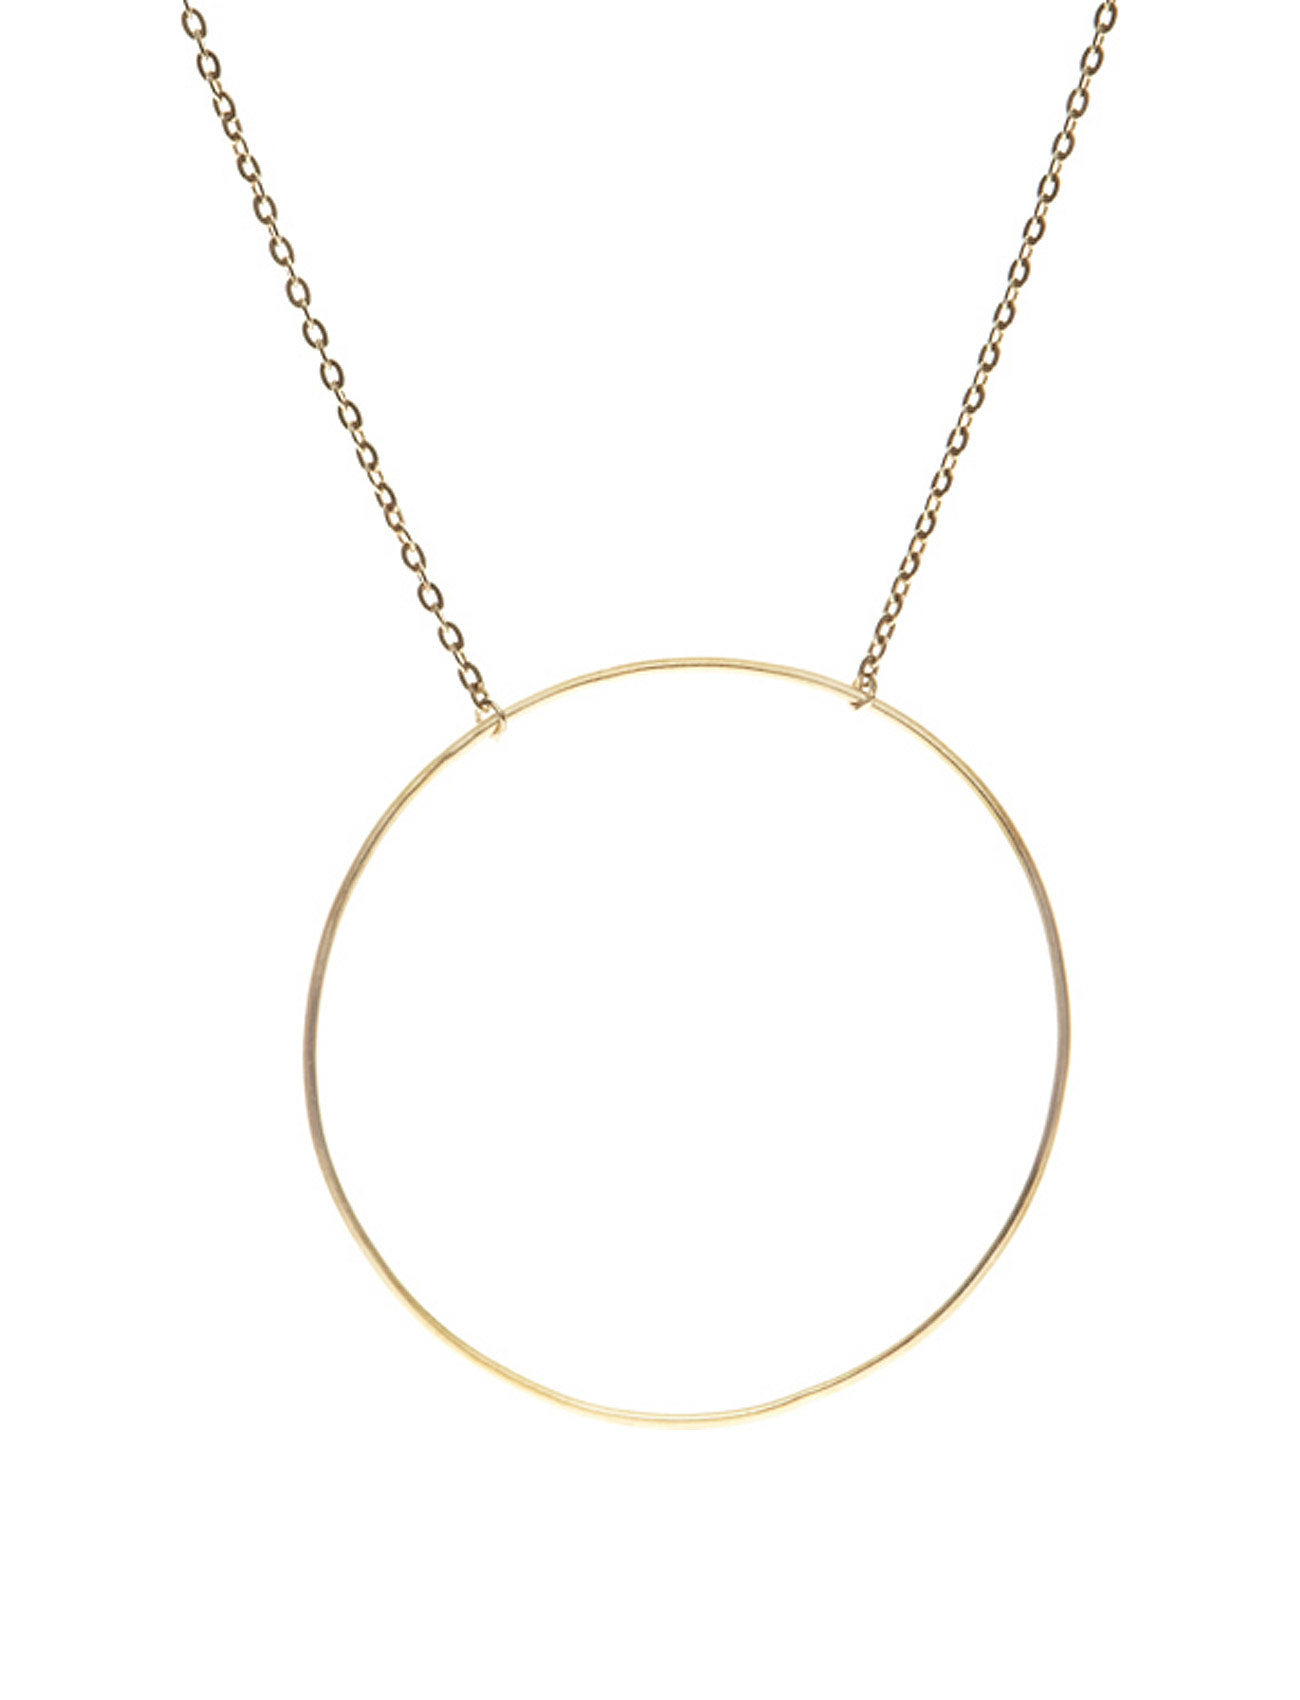 Monocle Necklace - 78 Cm Maria Black Smycken